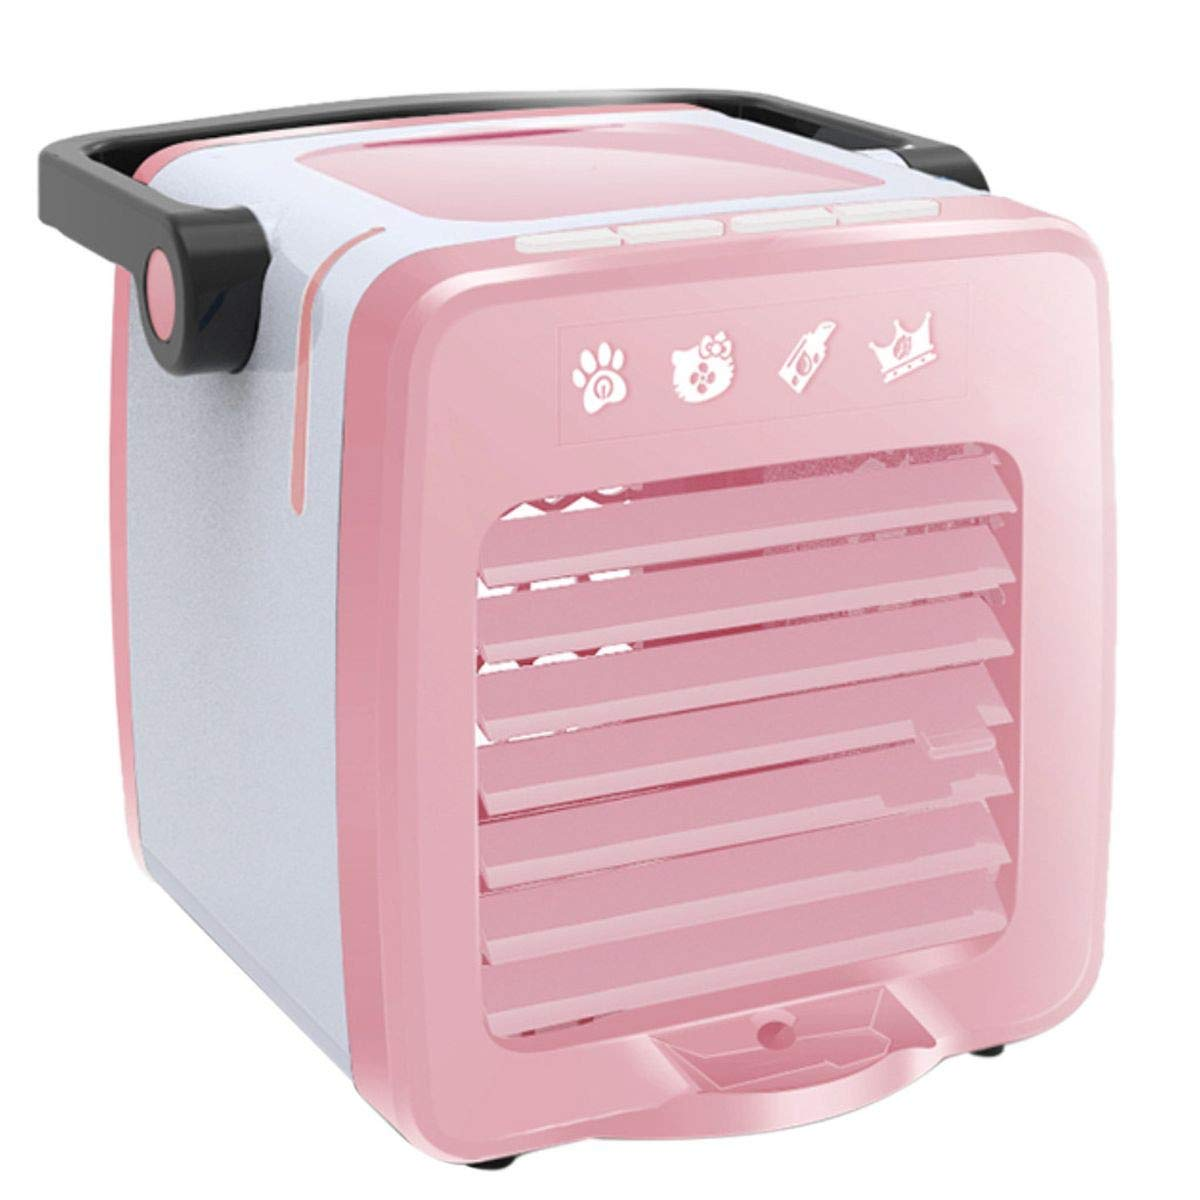 Portable Air Conditioner Fan, Personal Space Air Cooler Desk Fan Mini Evaporative Cooler Purifier Table Fan USB Rechargeable Fan with Handle and Night Light for Home Room Office Dorm (Pink , Free )